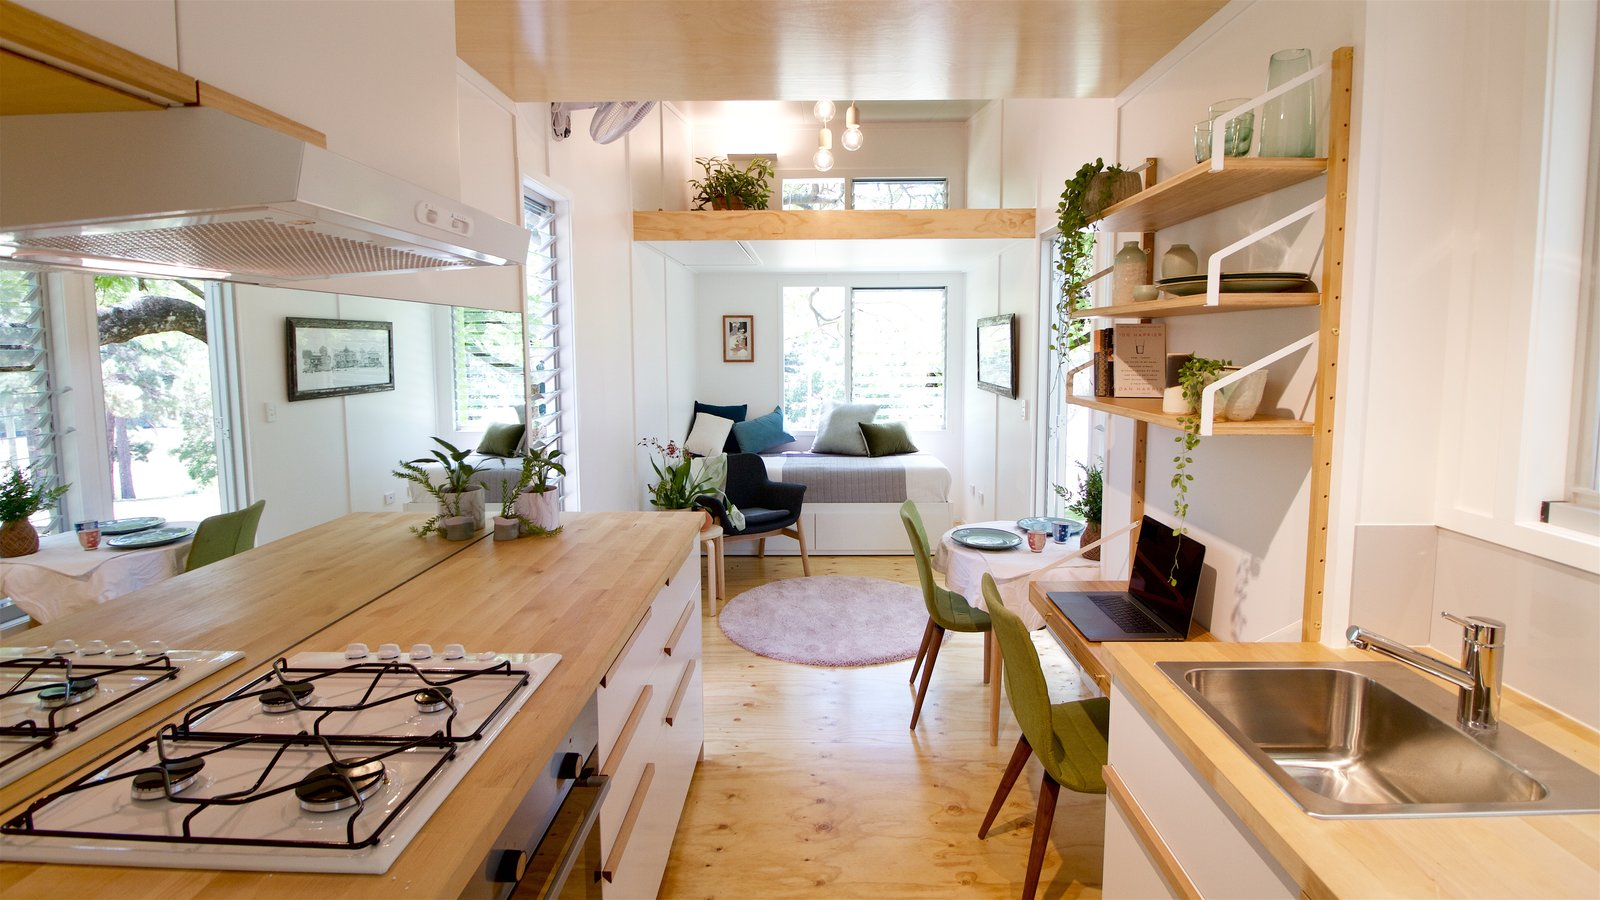 Modern Tiny House Interior: This Midcentury-Inspired Tiny House Radiates Clever Design